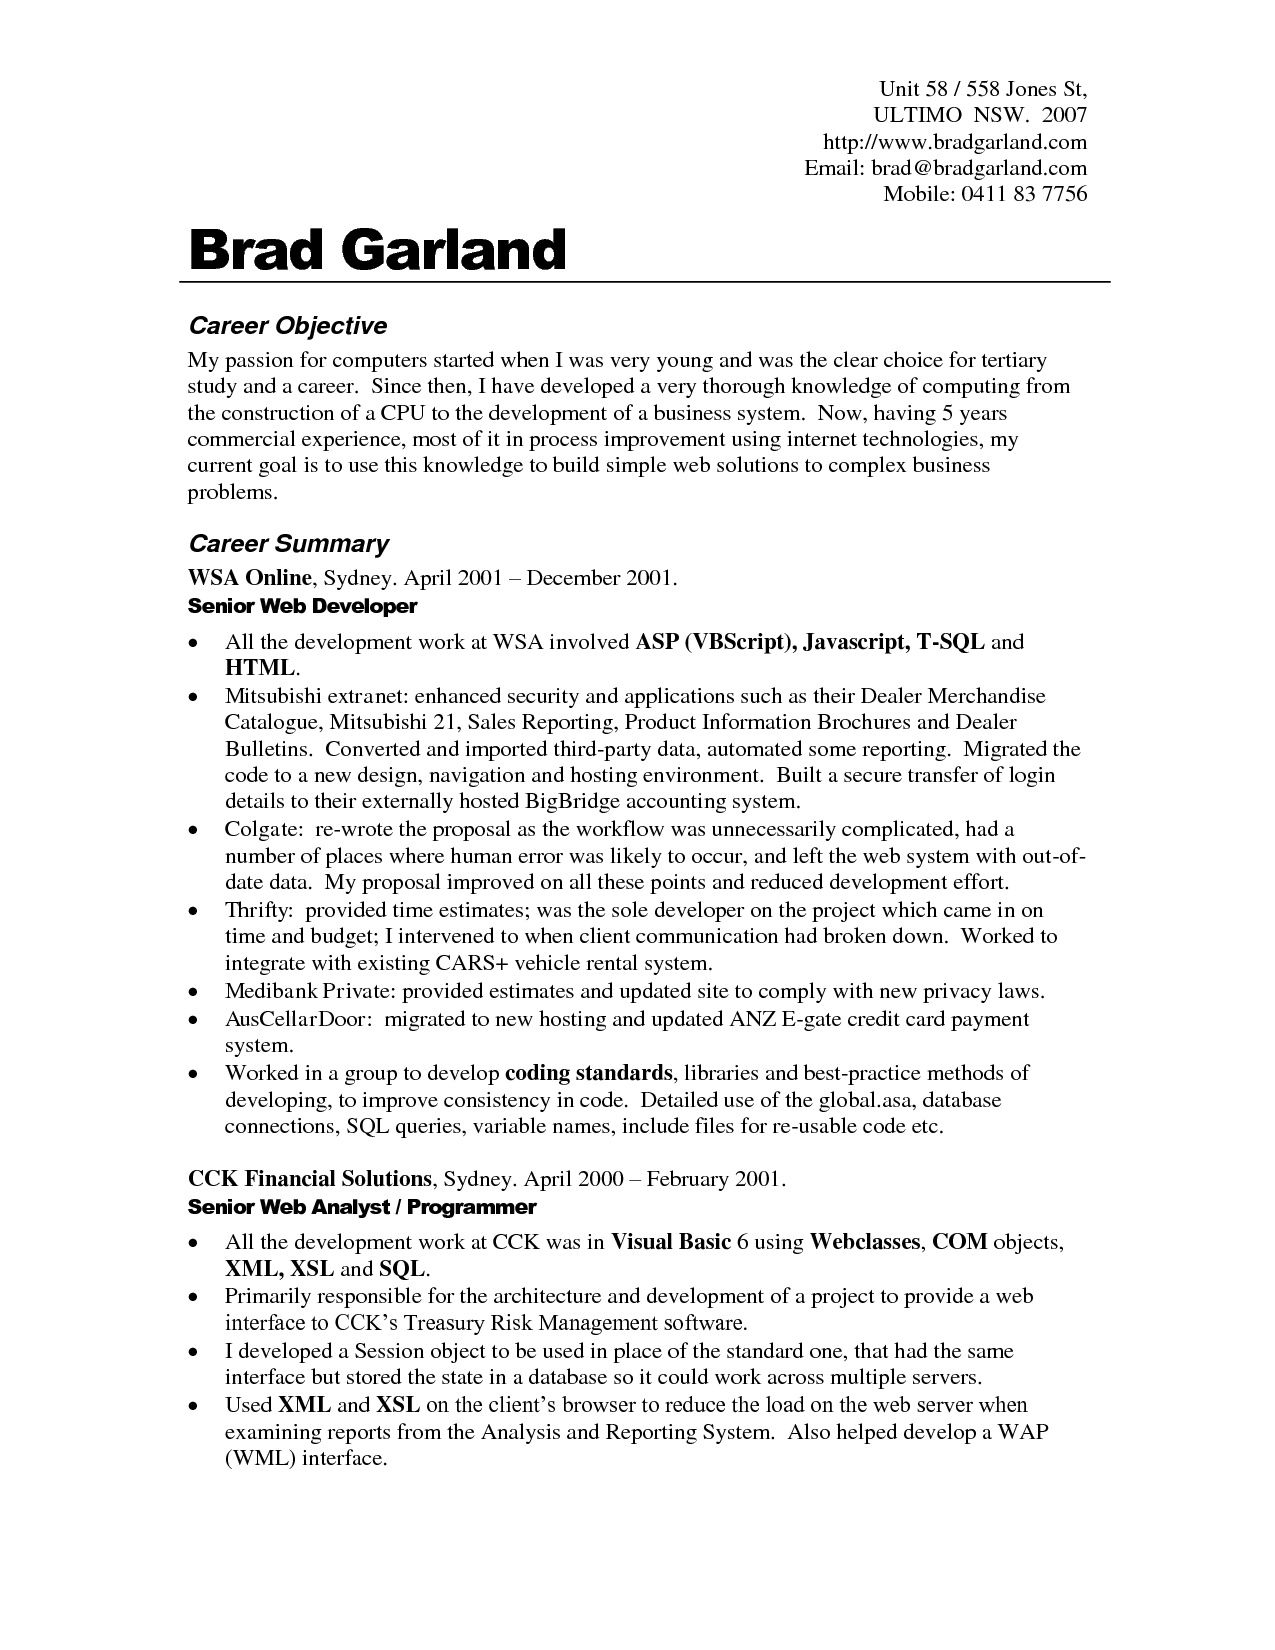 resume samples career objective - Objective In Resume For It